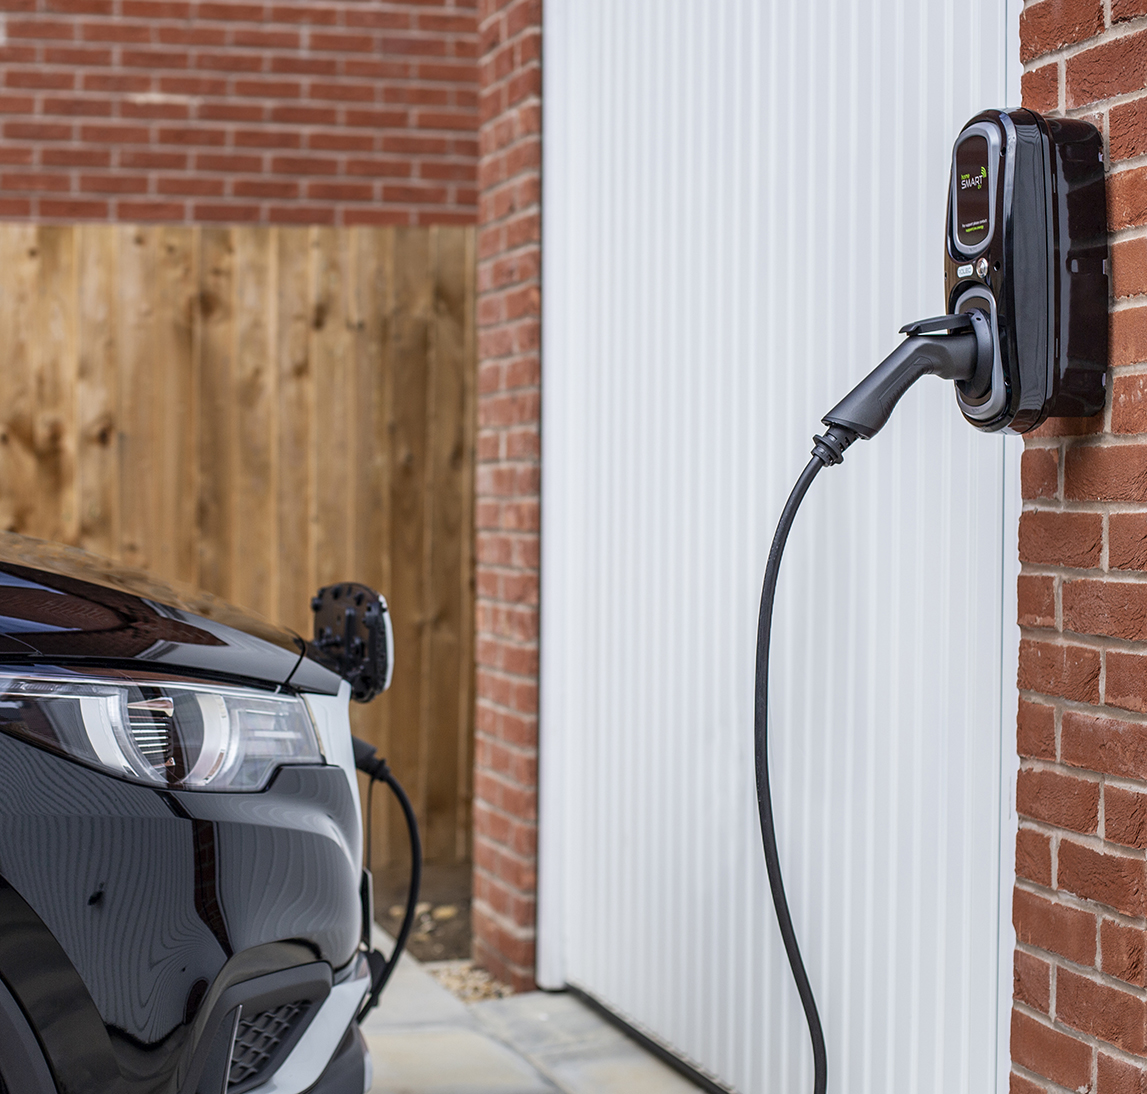 MG Home Charging 2a